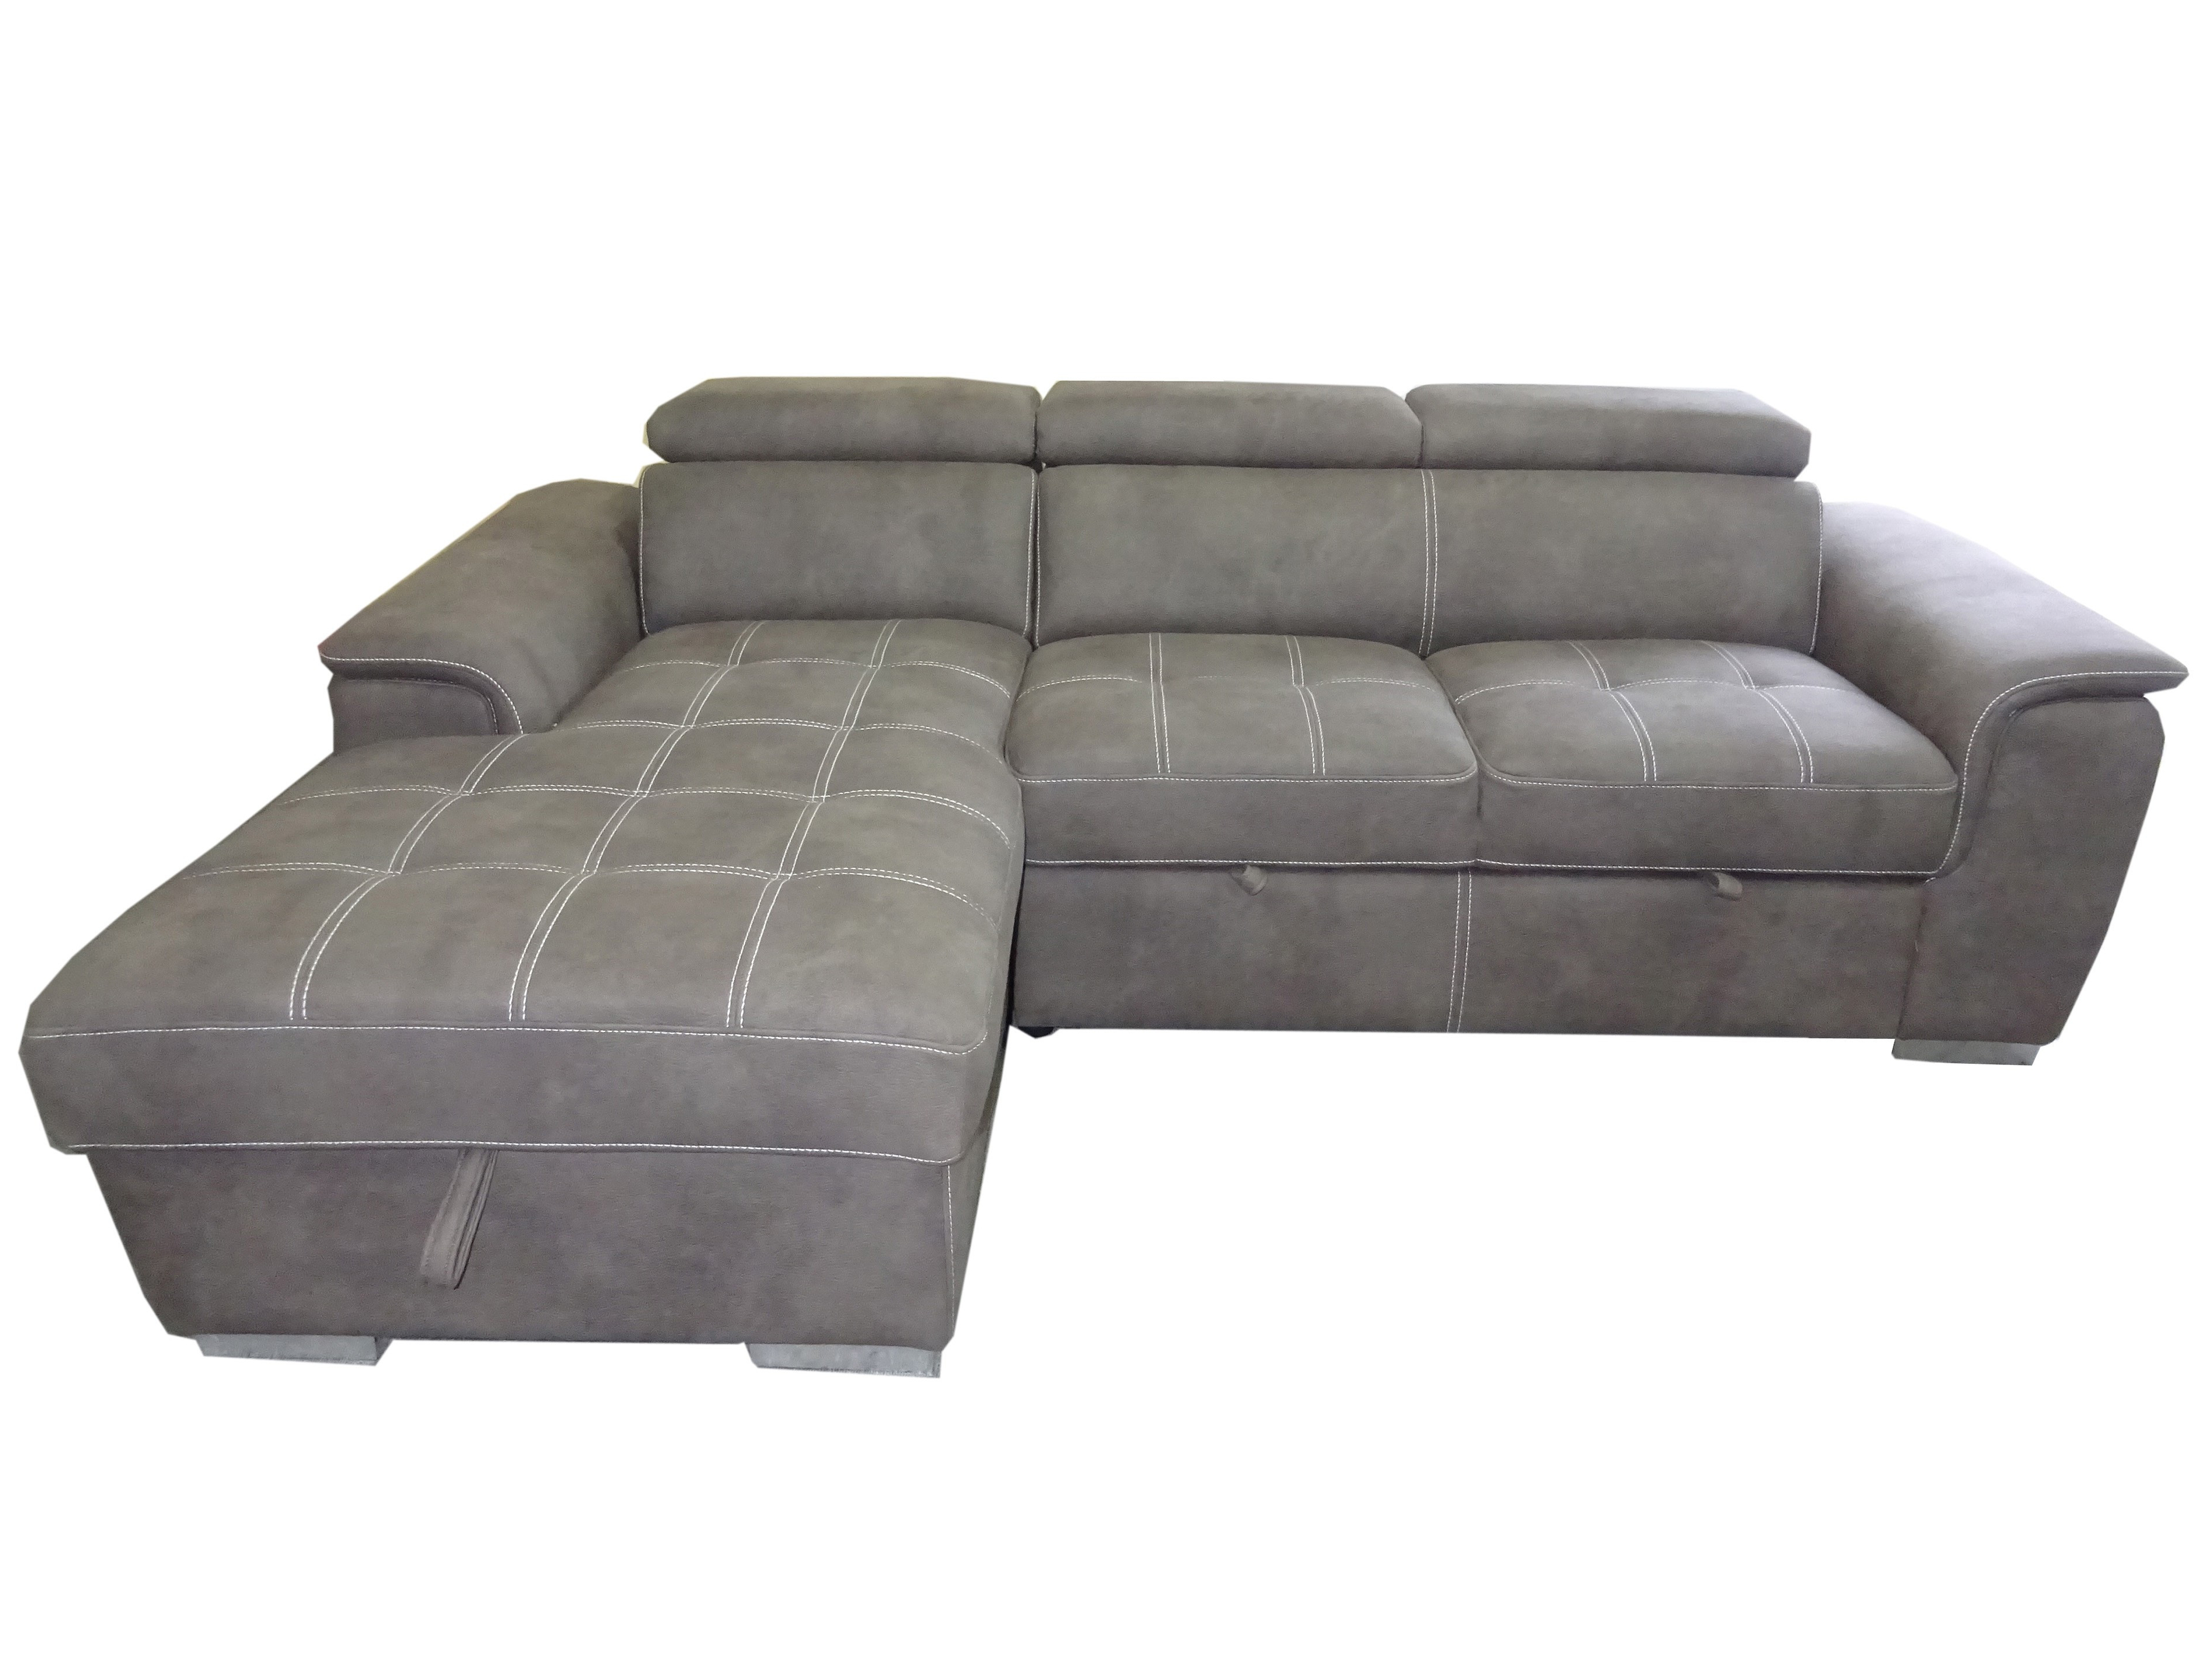 Primo Lucca 2 Piece Sectional Sofa Bed (View 10 of 20)